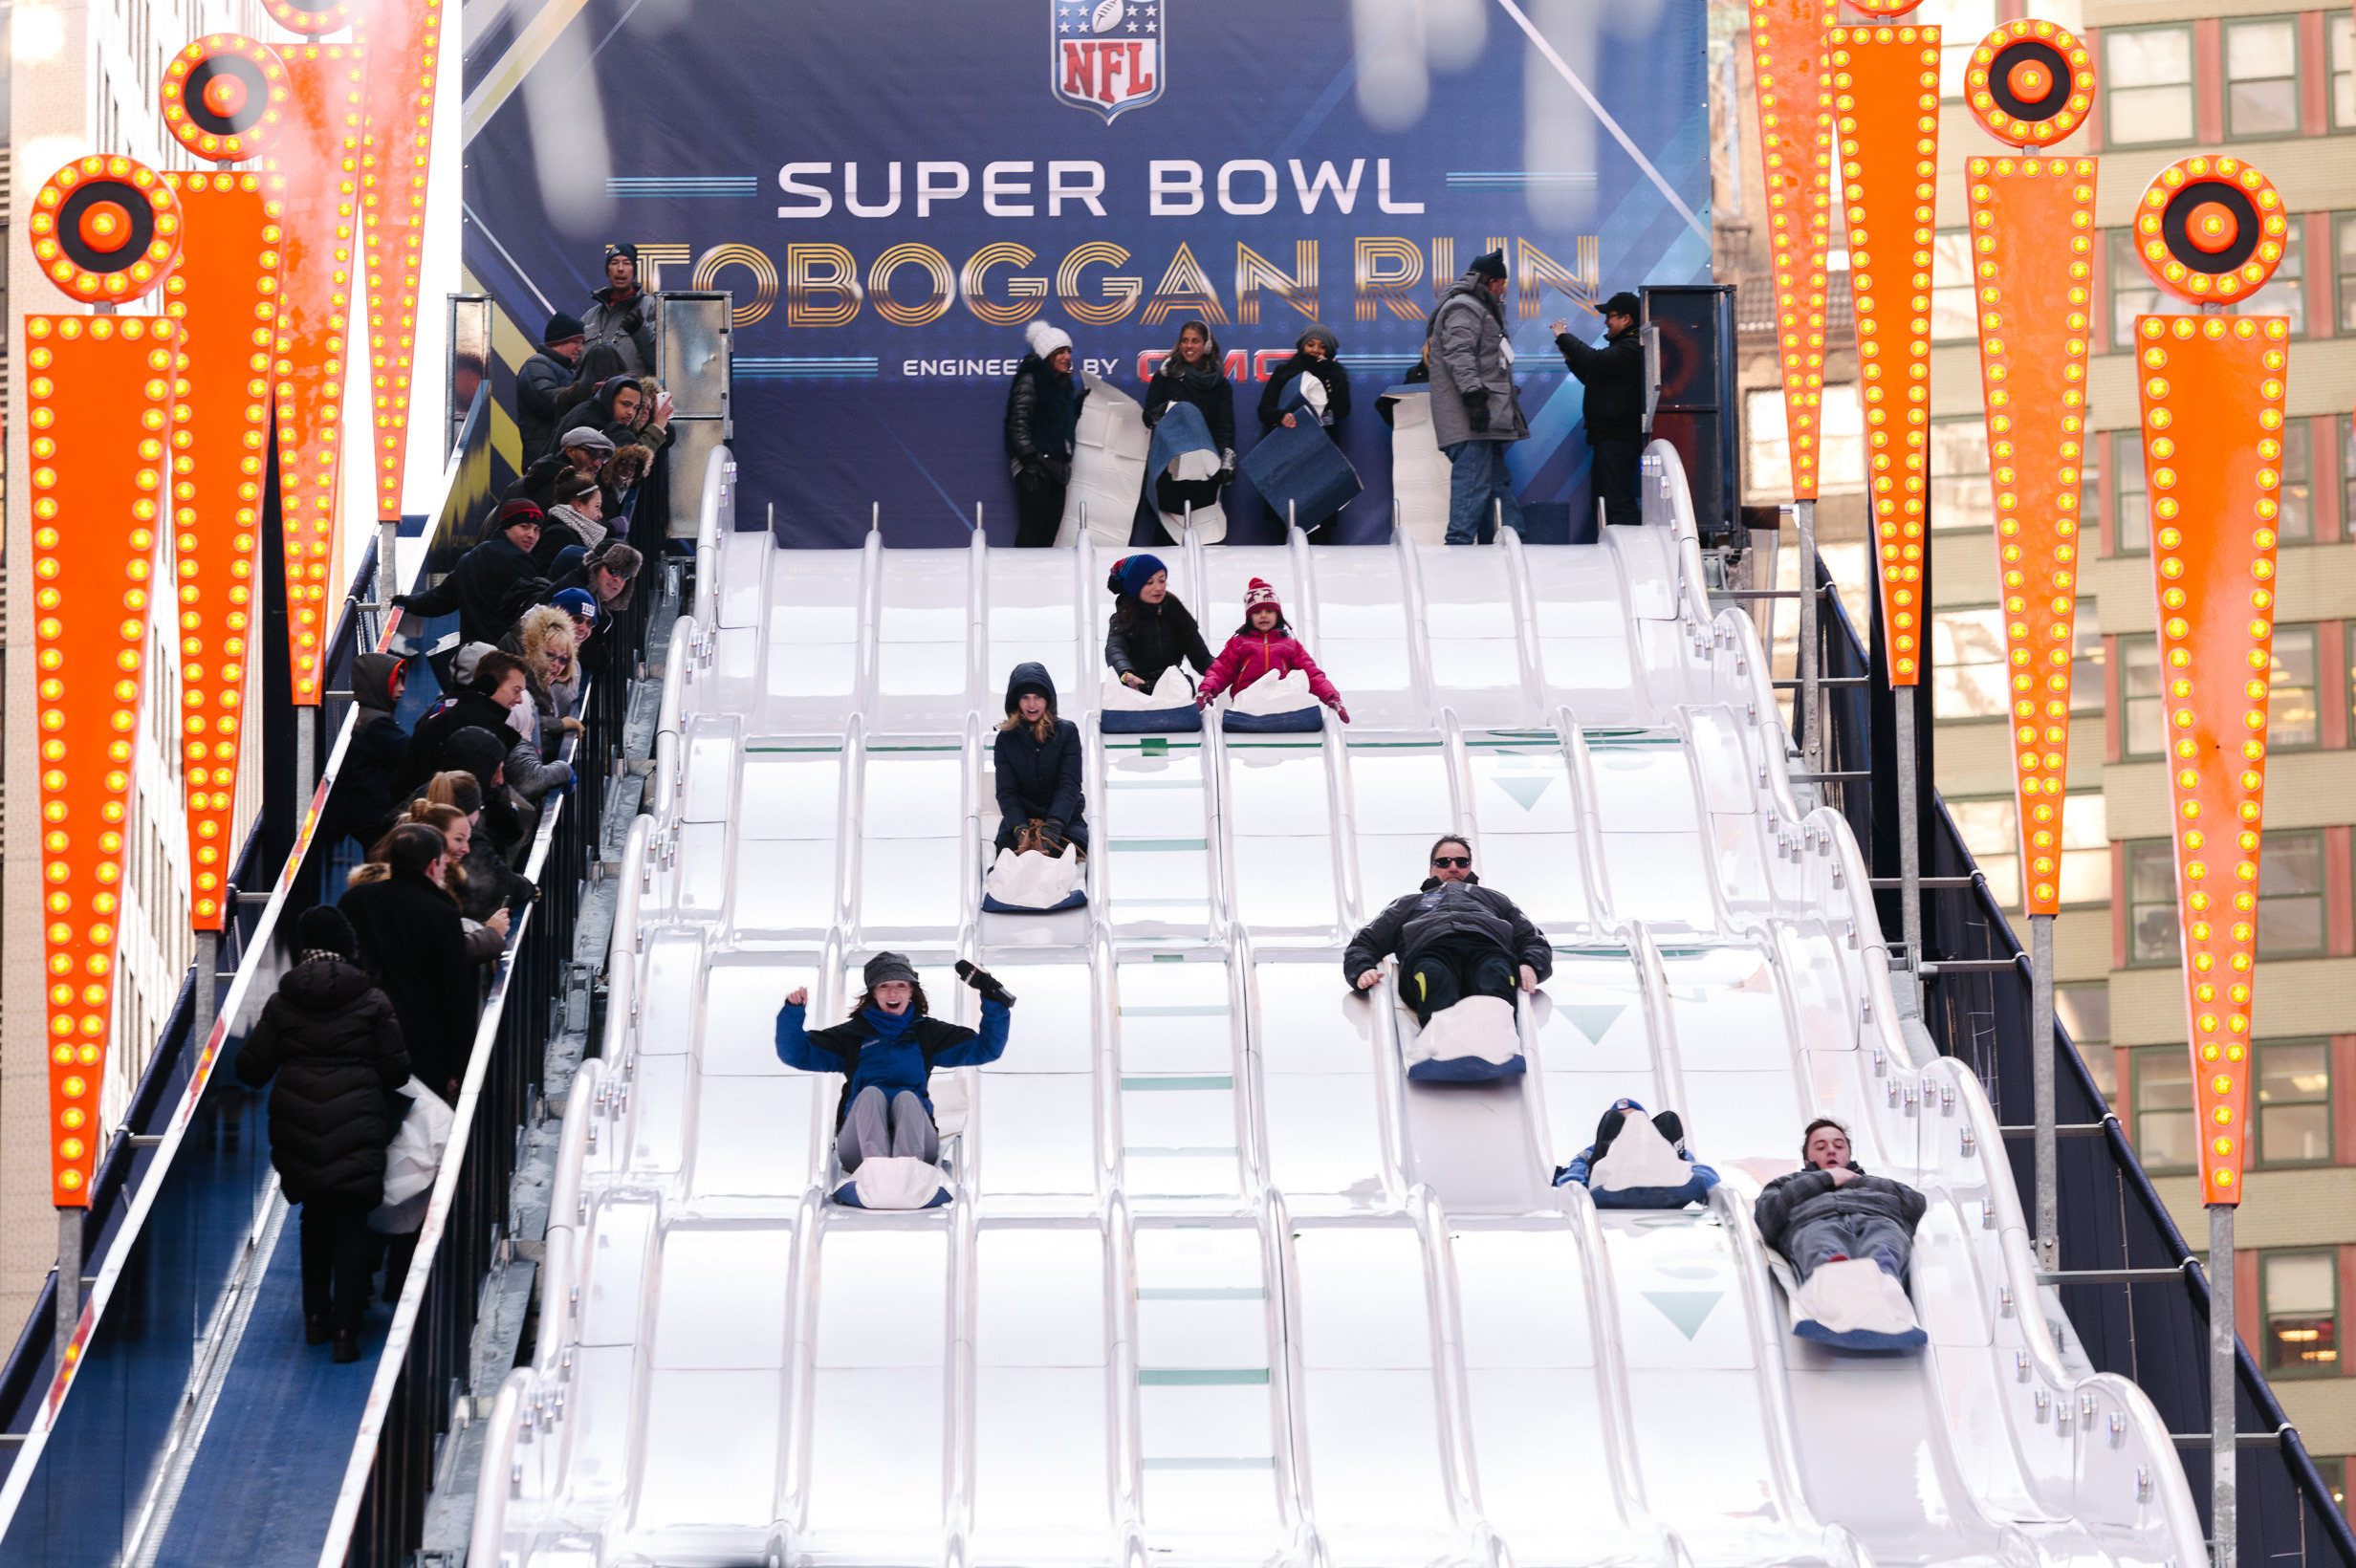 Super Bowl Boulevard: Highlights from the New York Super Bowl event in Times Square